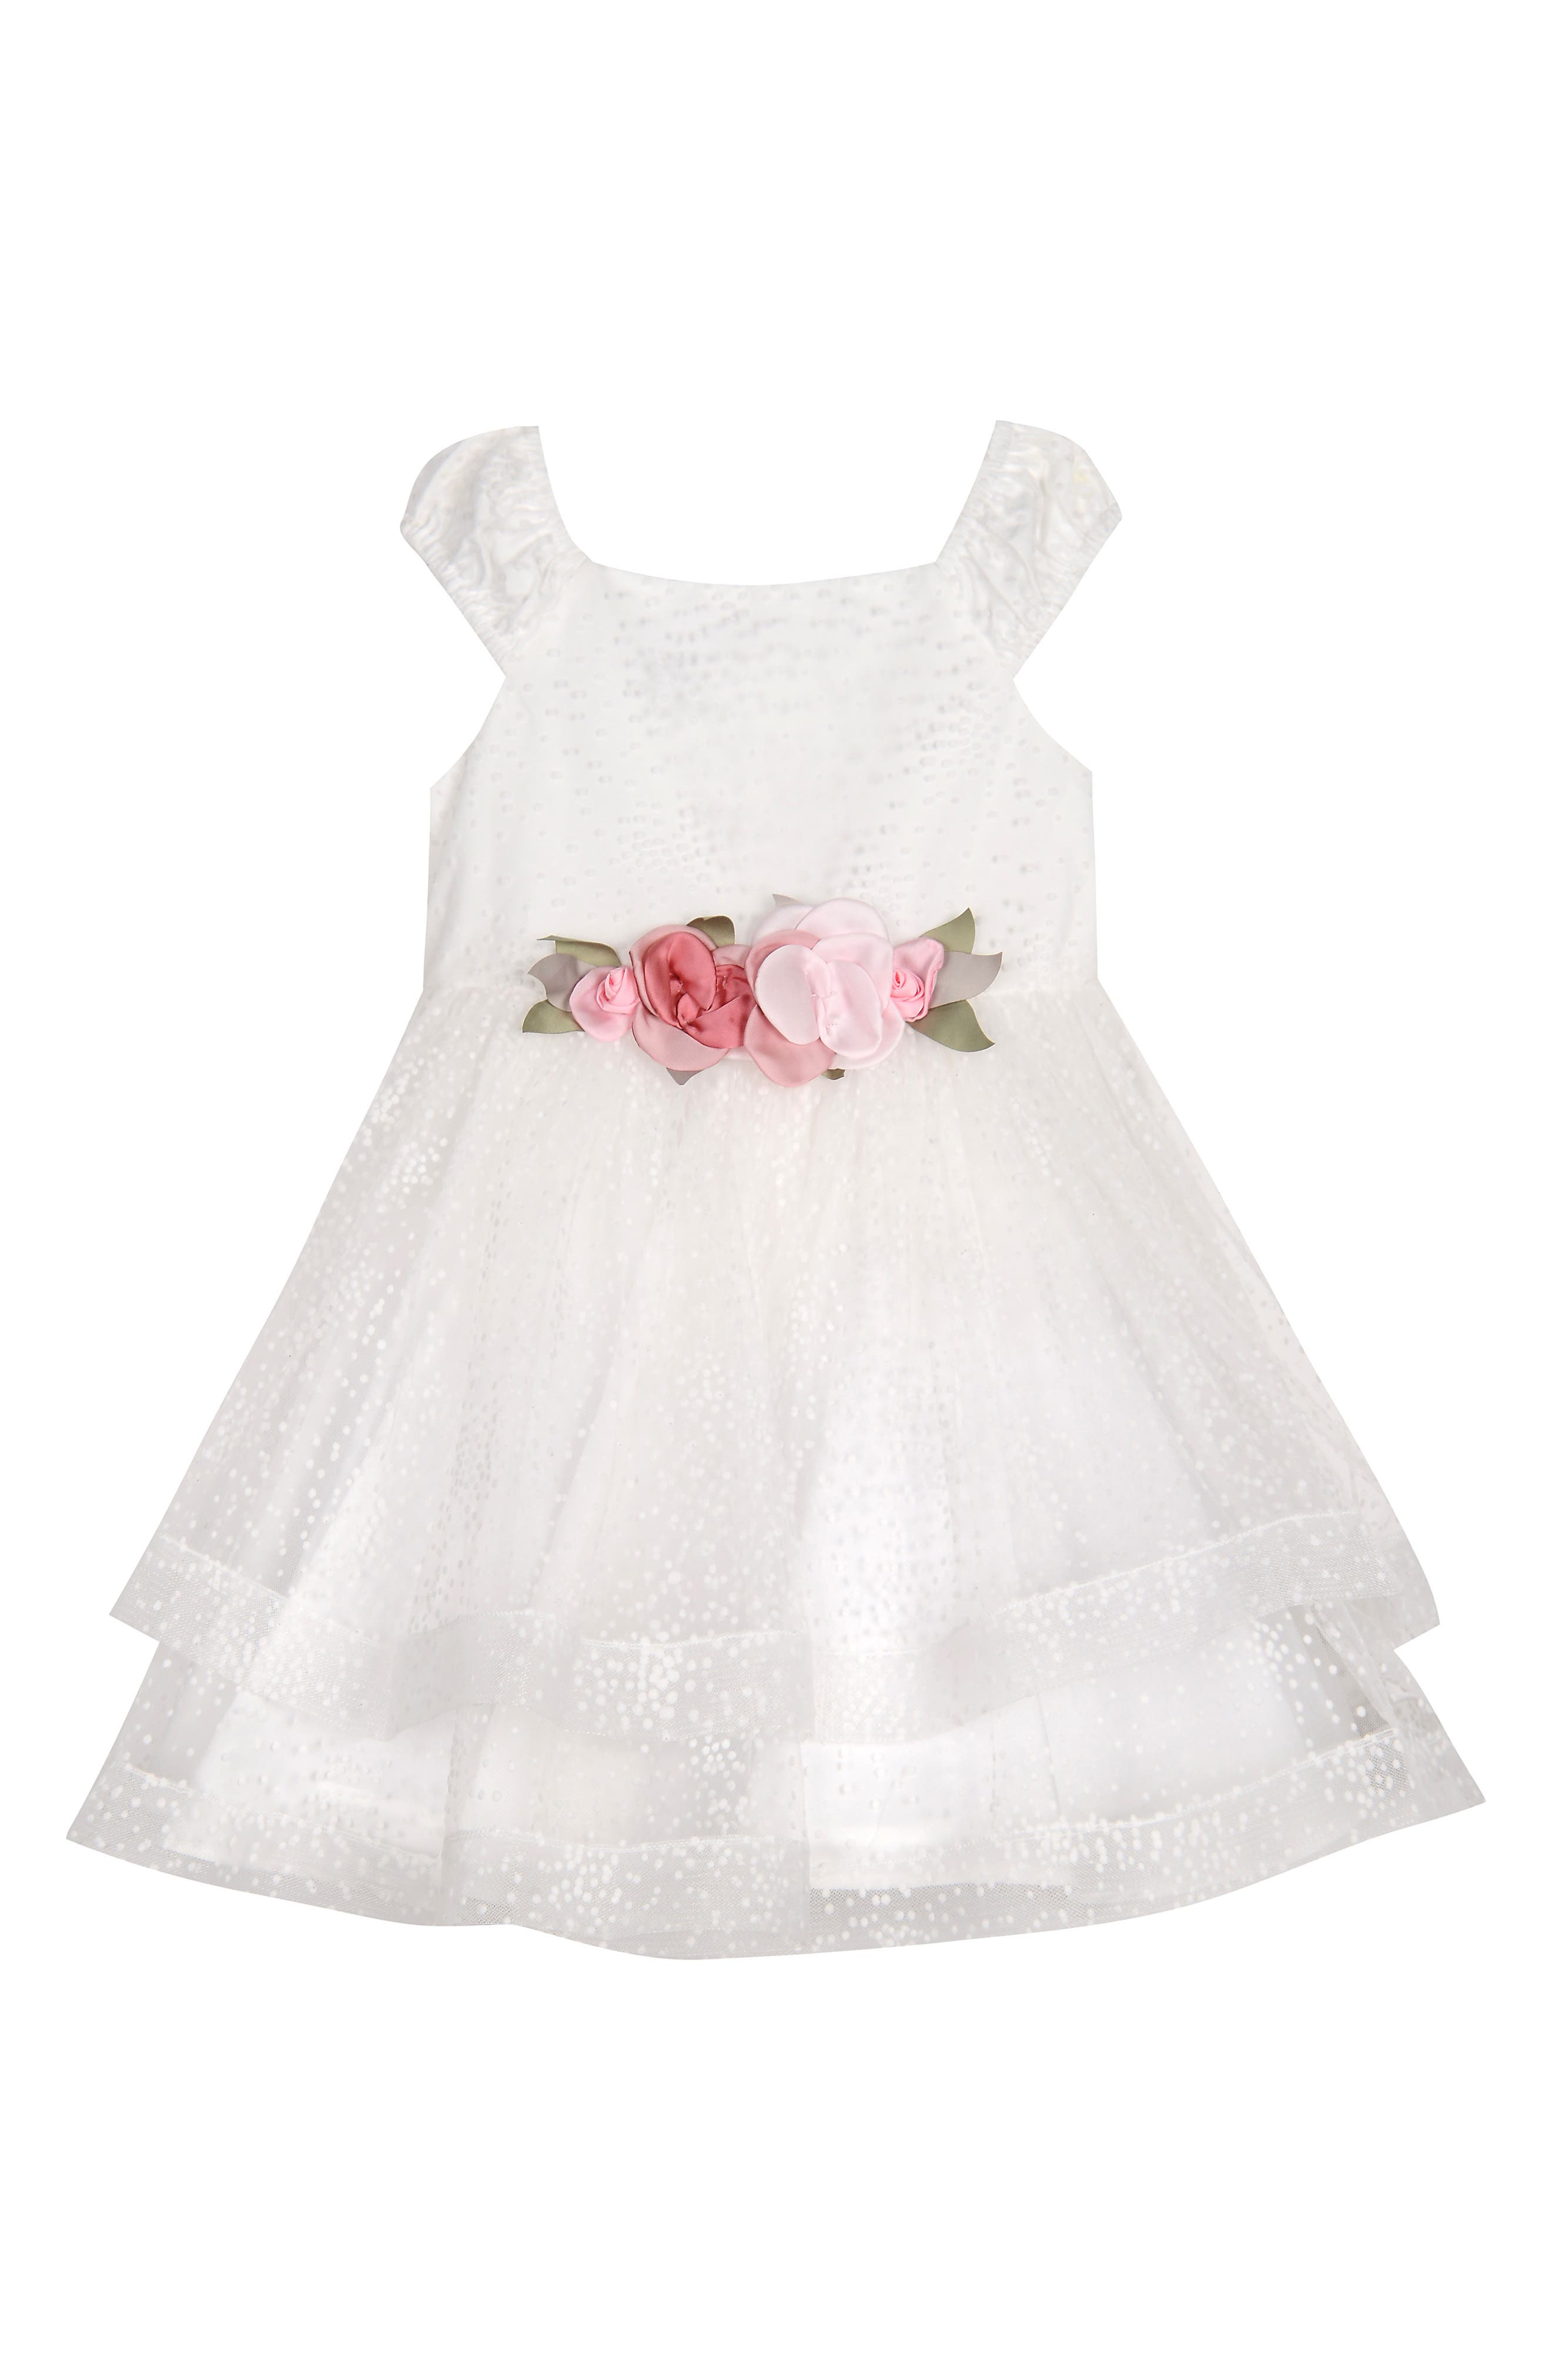 PIPPA & JULIE, Dot Texture Flower Girl Dress, Main thumbnail 1, color, WHITE